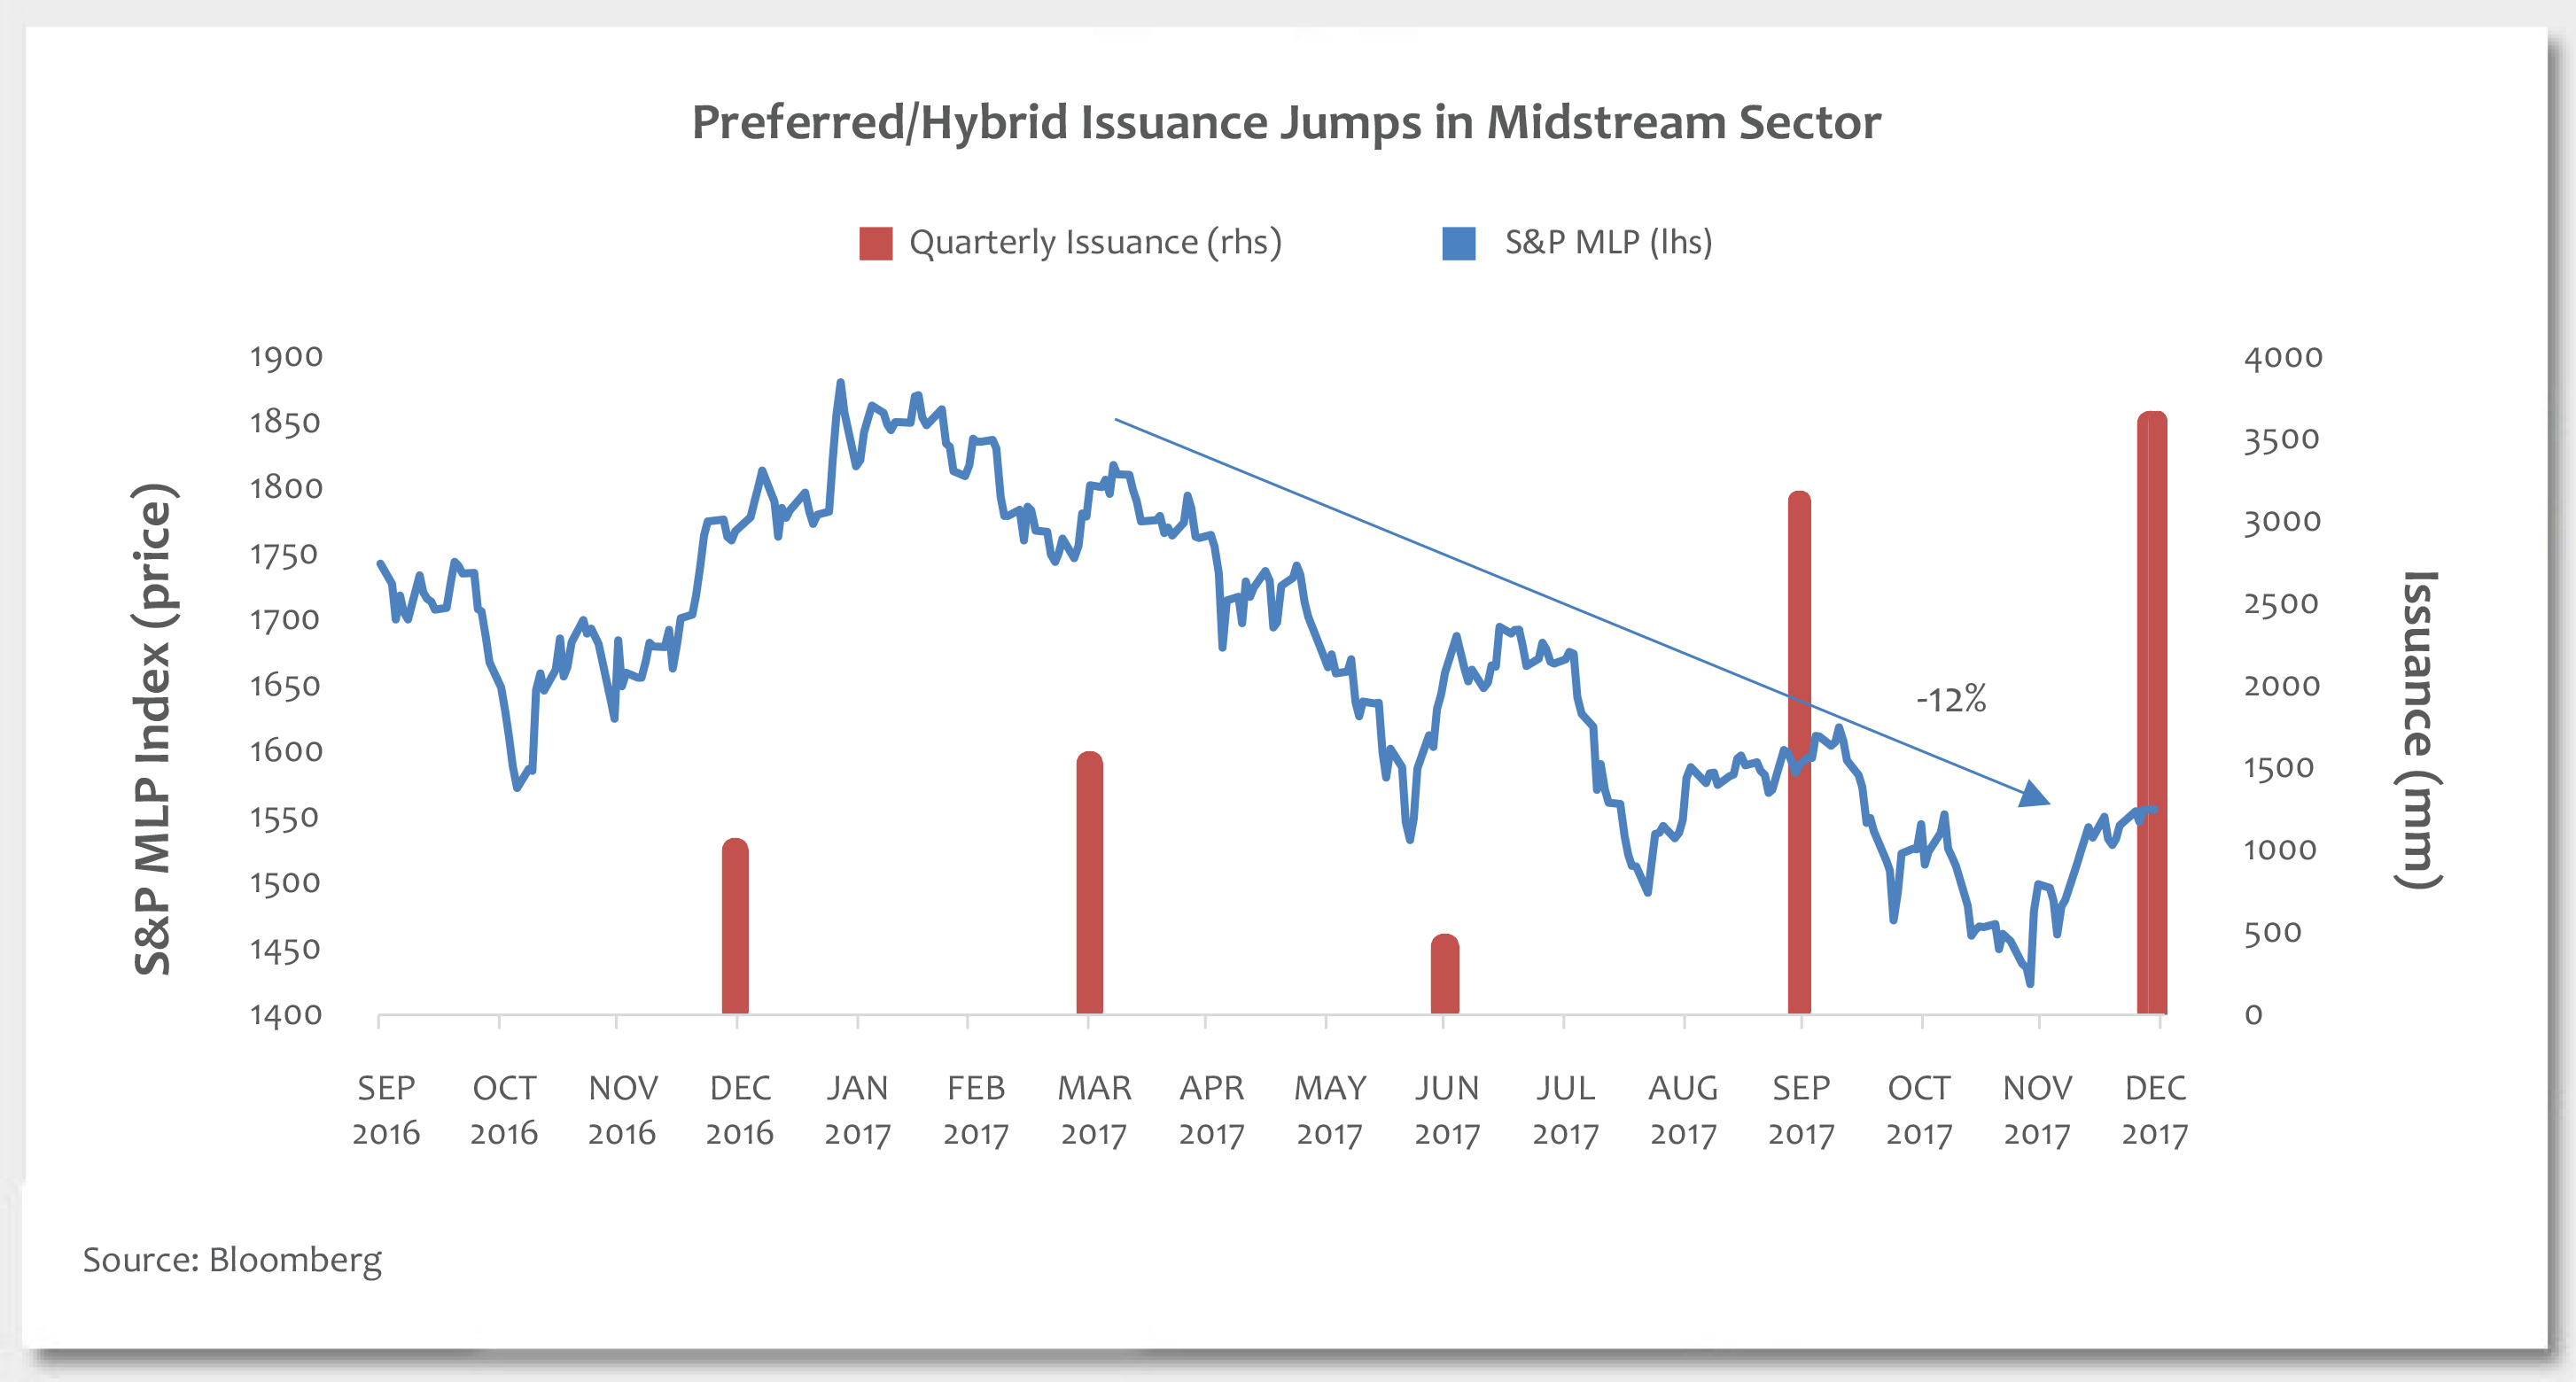 Preferred/Hybrid Issuance Jumps in Midstream Sector Photo